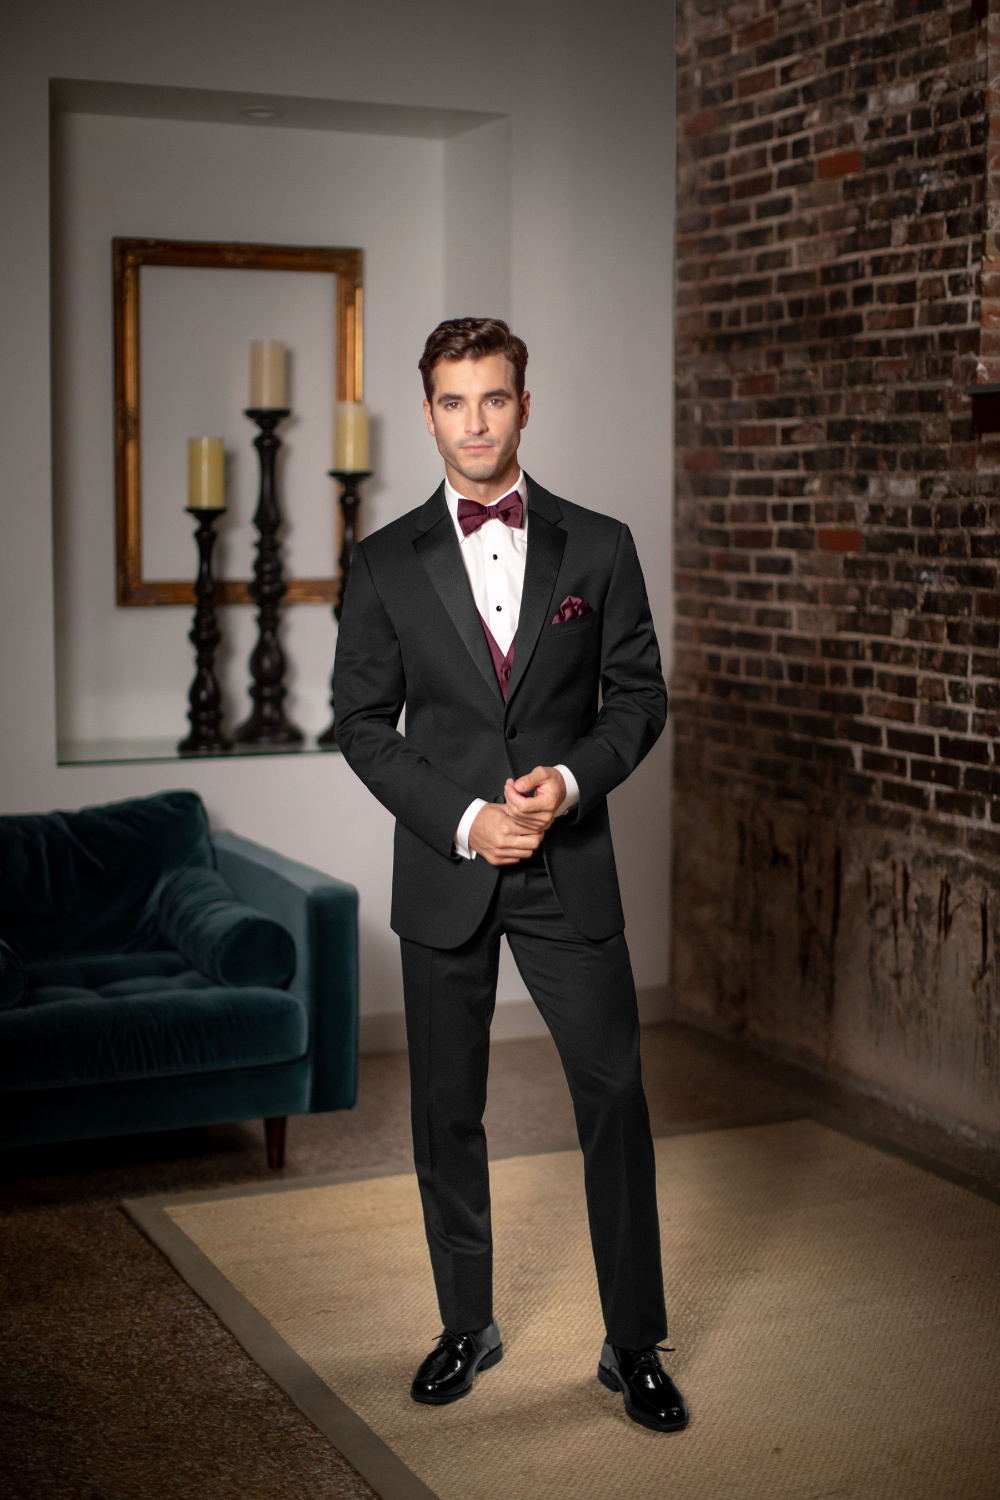 Pin by toni cadwallader on Tux Rentals Groom suit black